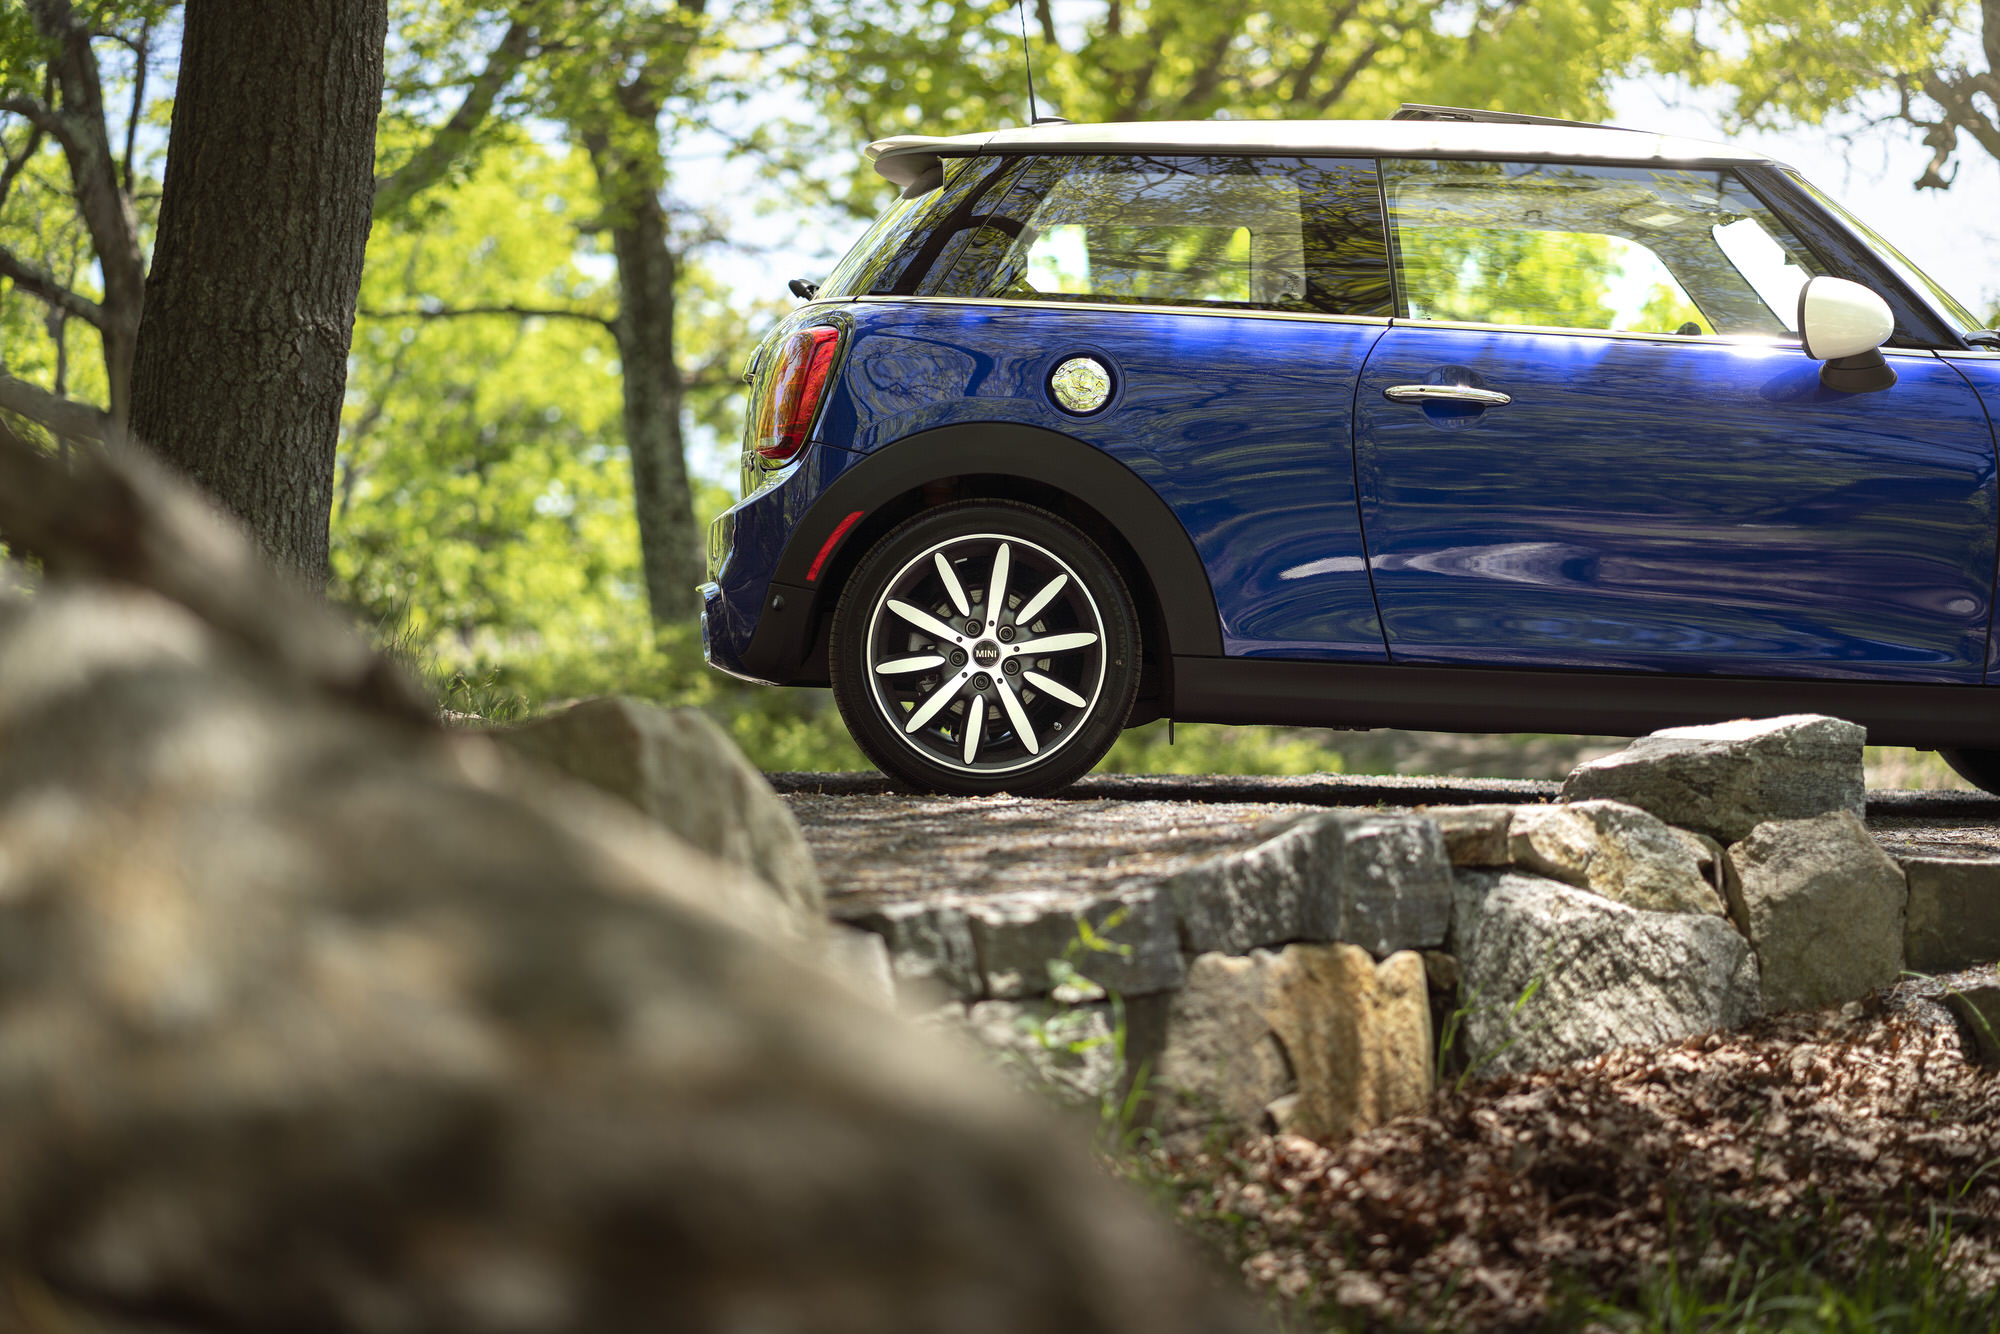 Blue MINI hardtop at New York's Bear Mountain State Park